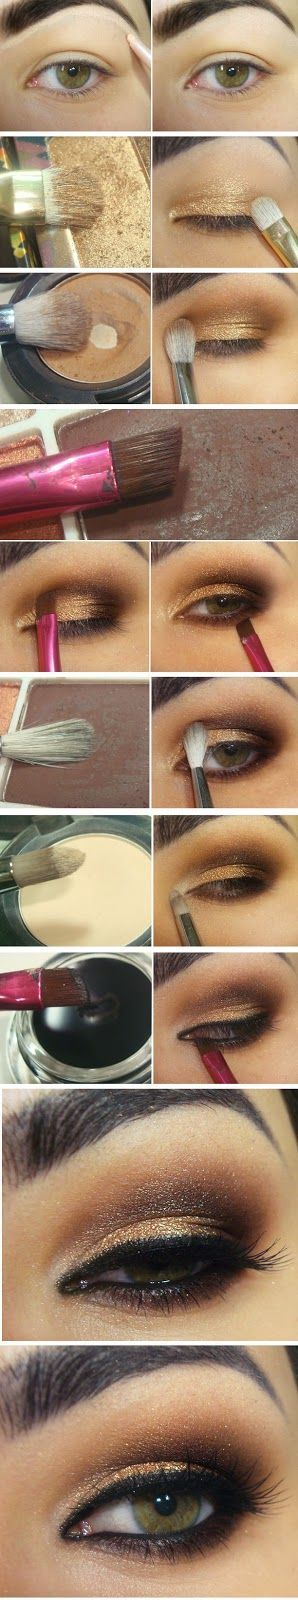 How to Do Natural Makeup. Makeup Step by Step - Look Good Feel Better. Following a restless night or when you feel ill, you can rely on a few makeup tricks to improve the look of your tired skin and puffy eyes. affiliate link